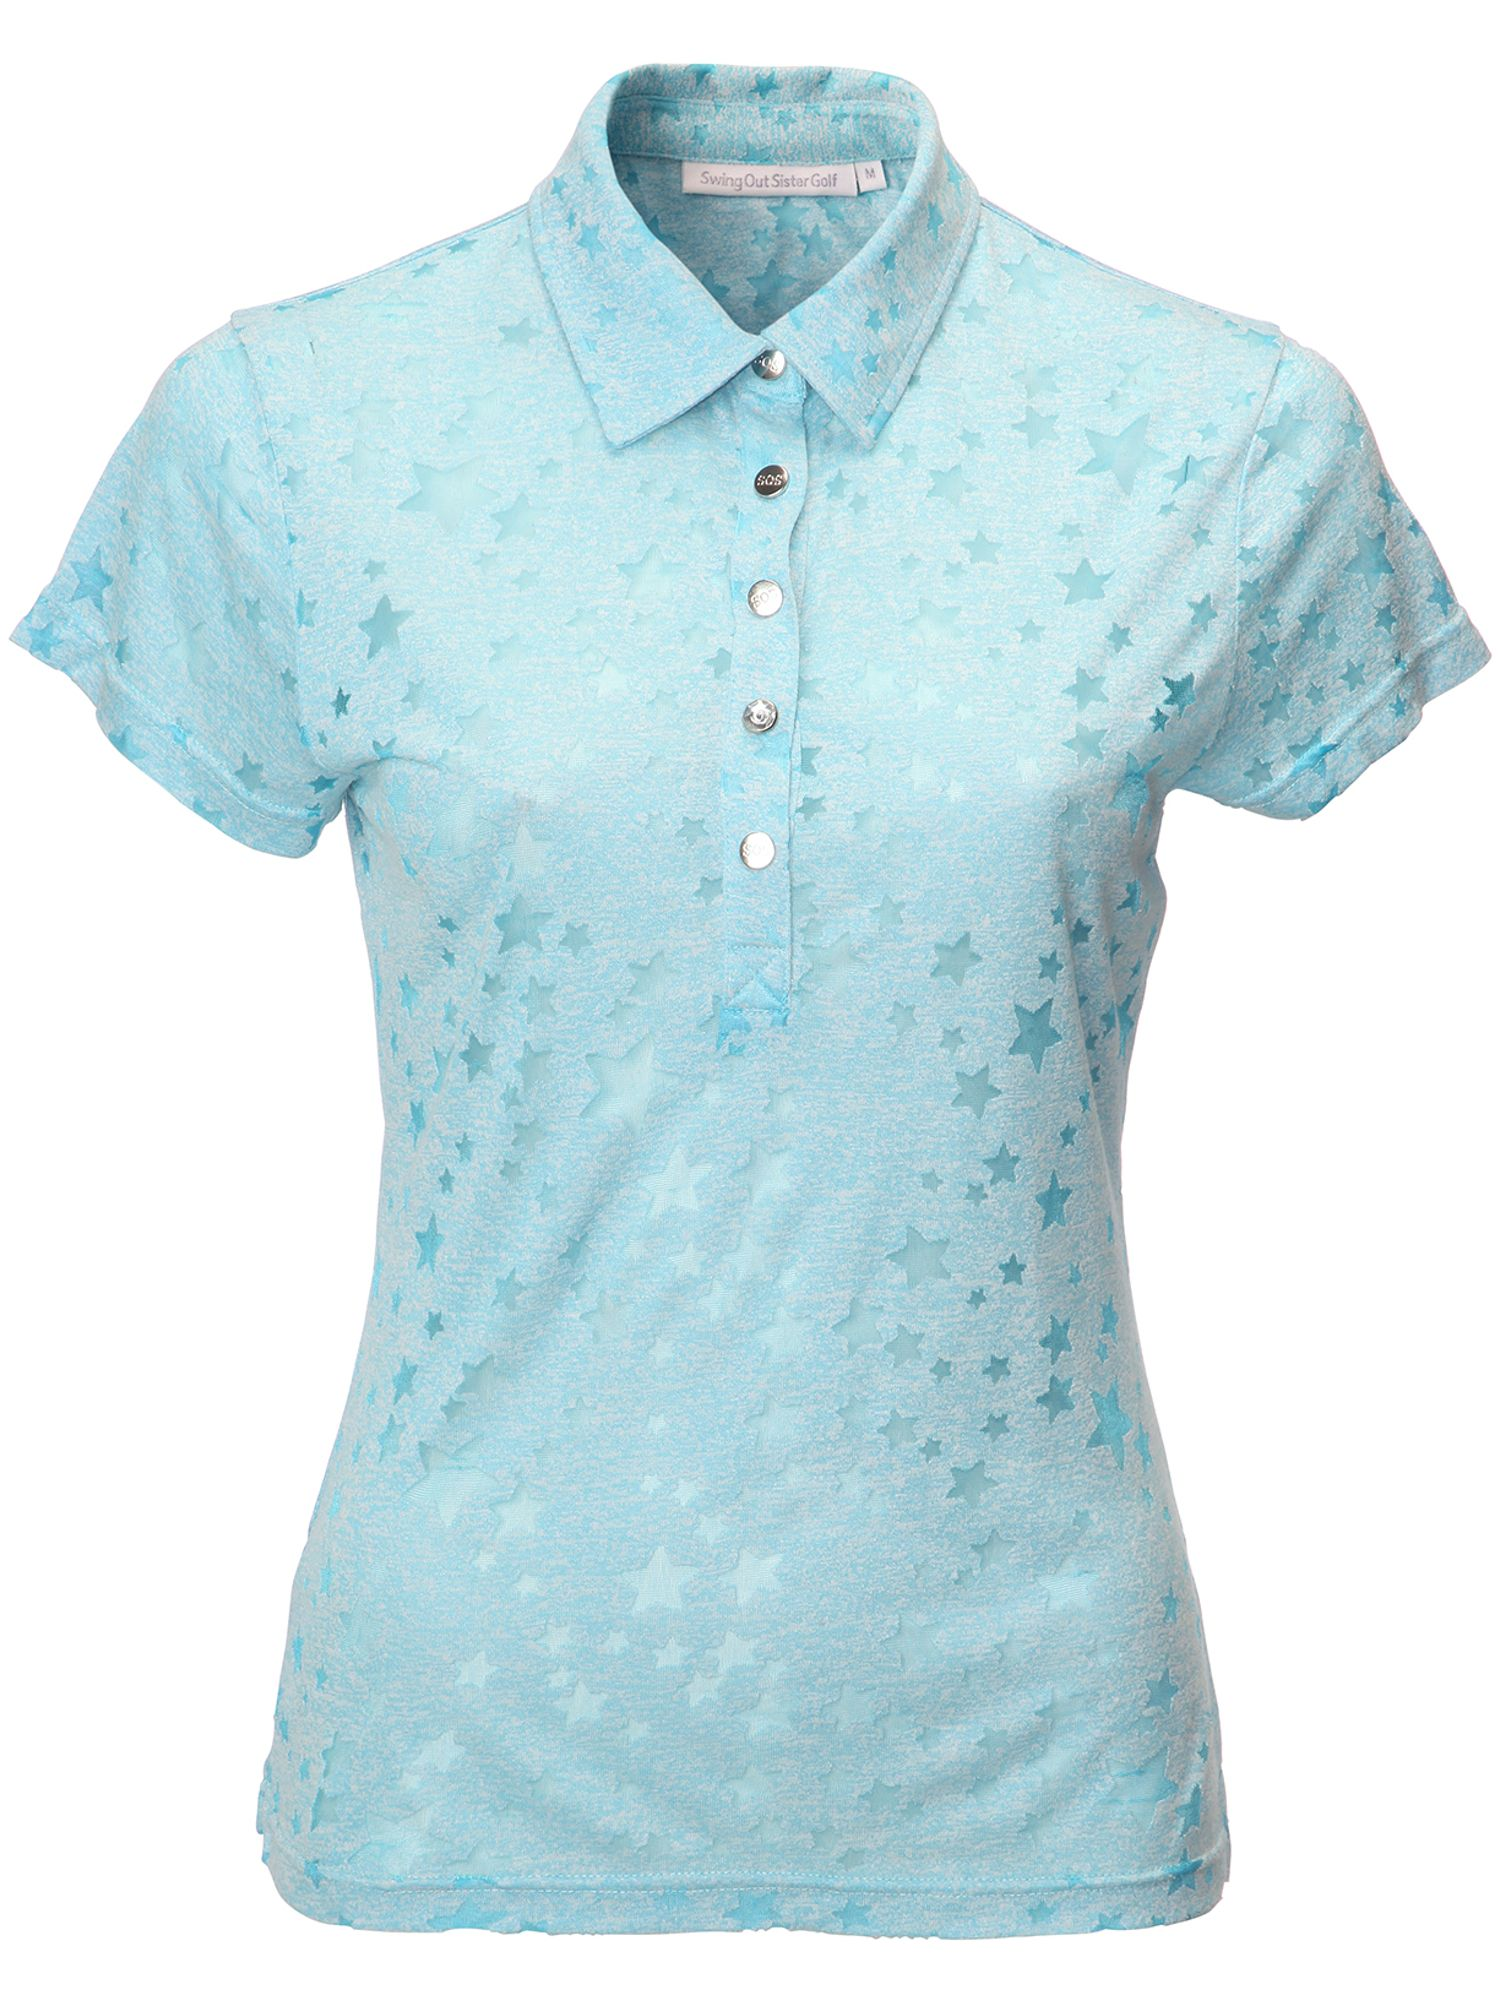 Swing Out Sister Christina Star Print Cap Sleeve Shirt, Blue